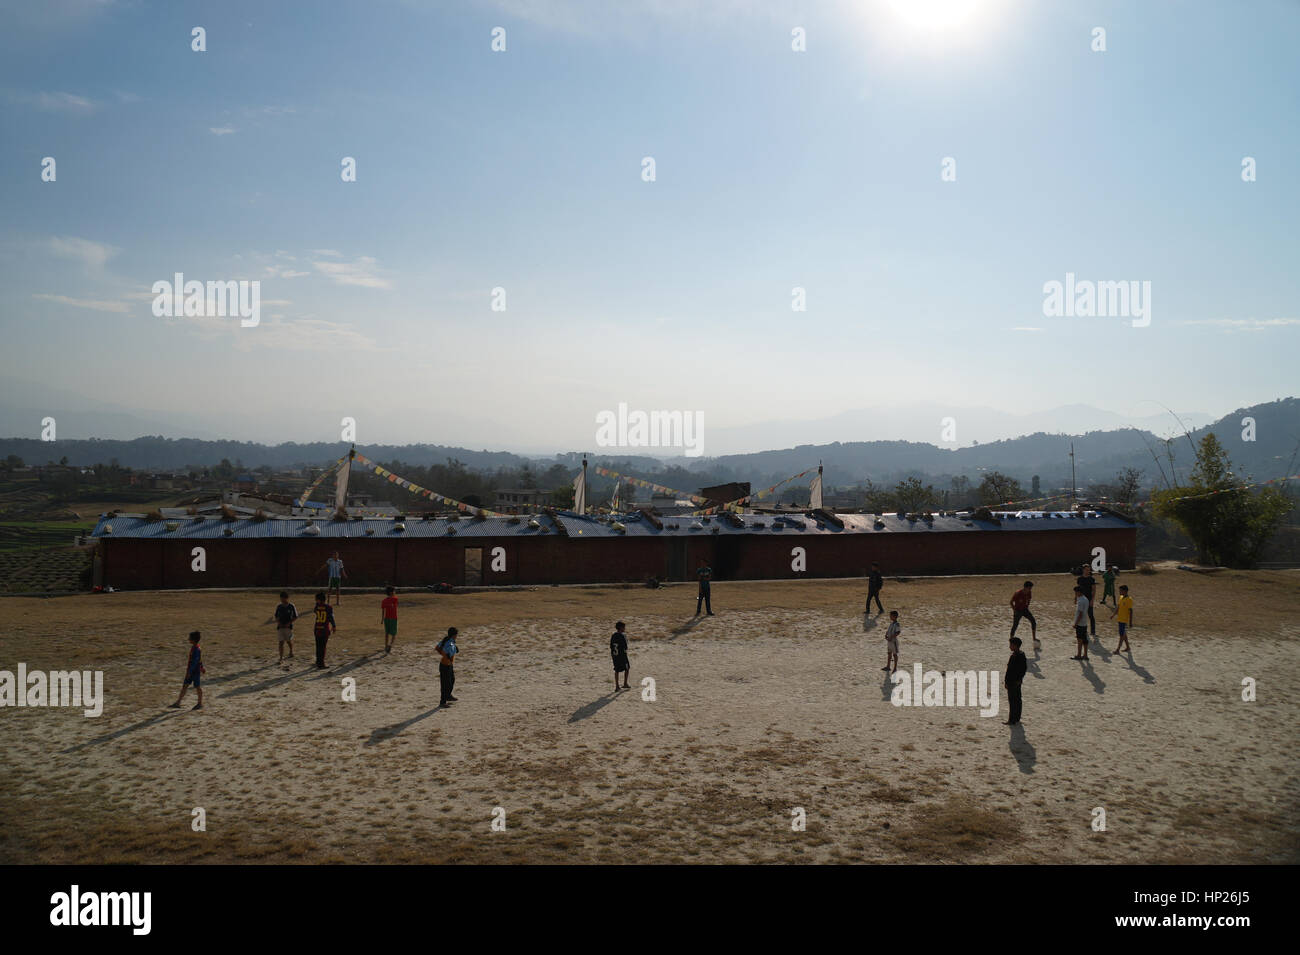 Football in third world country - Stock Image